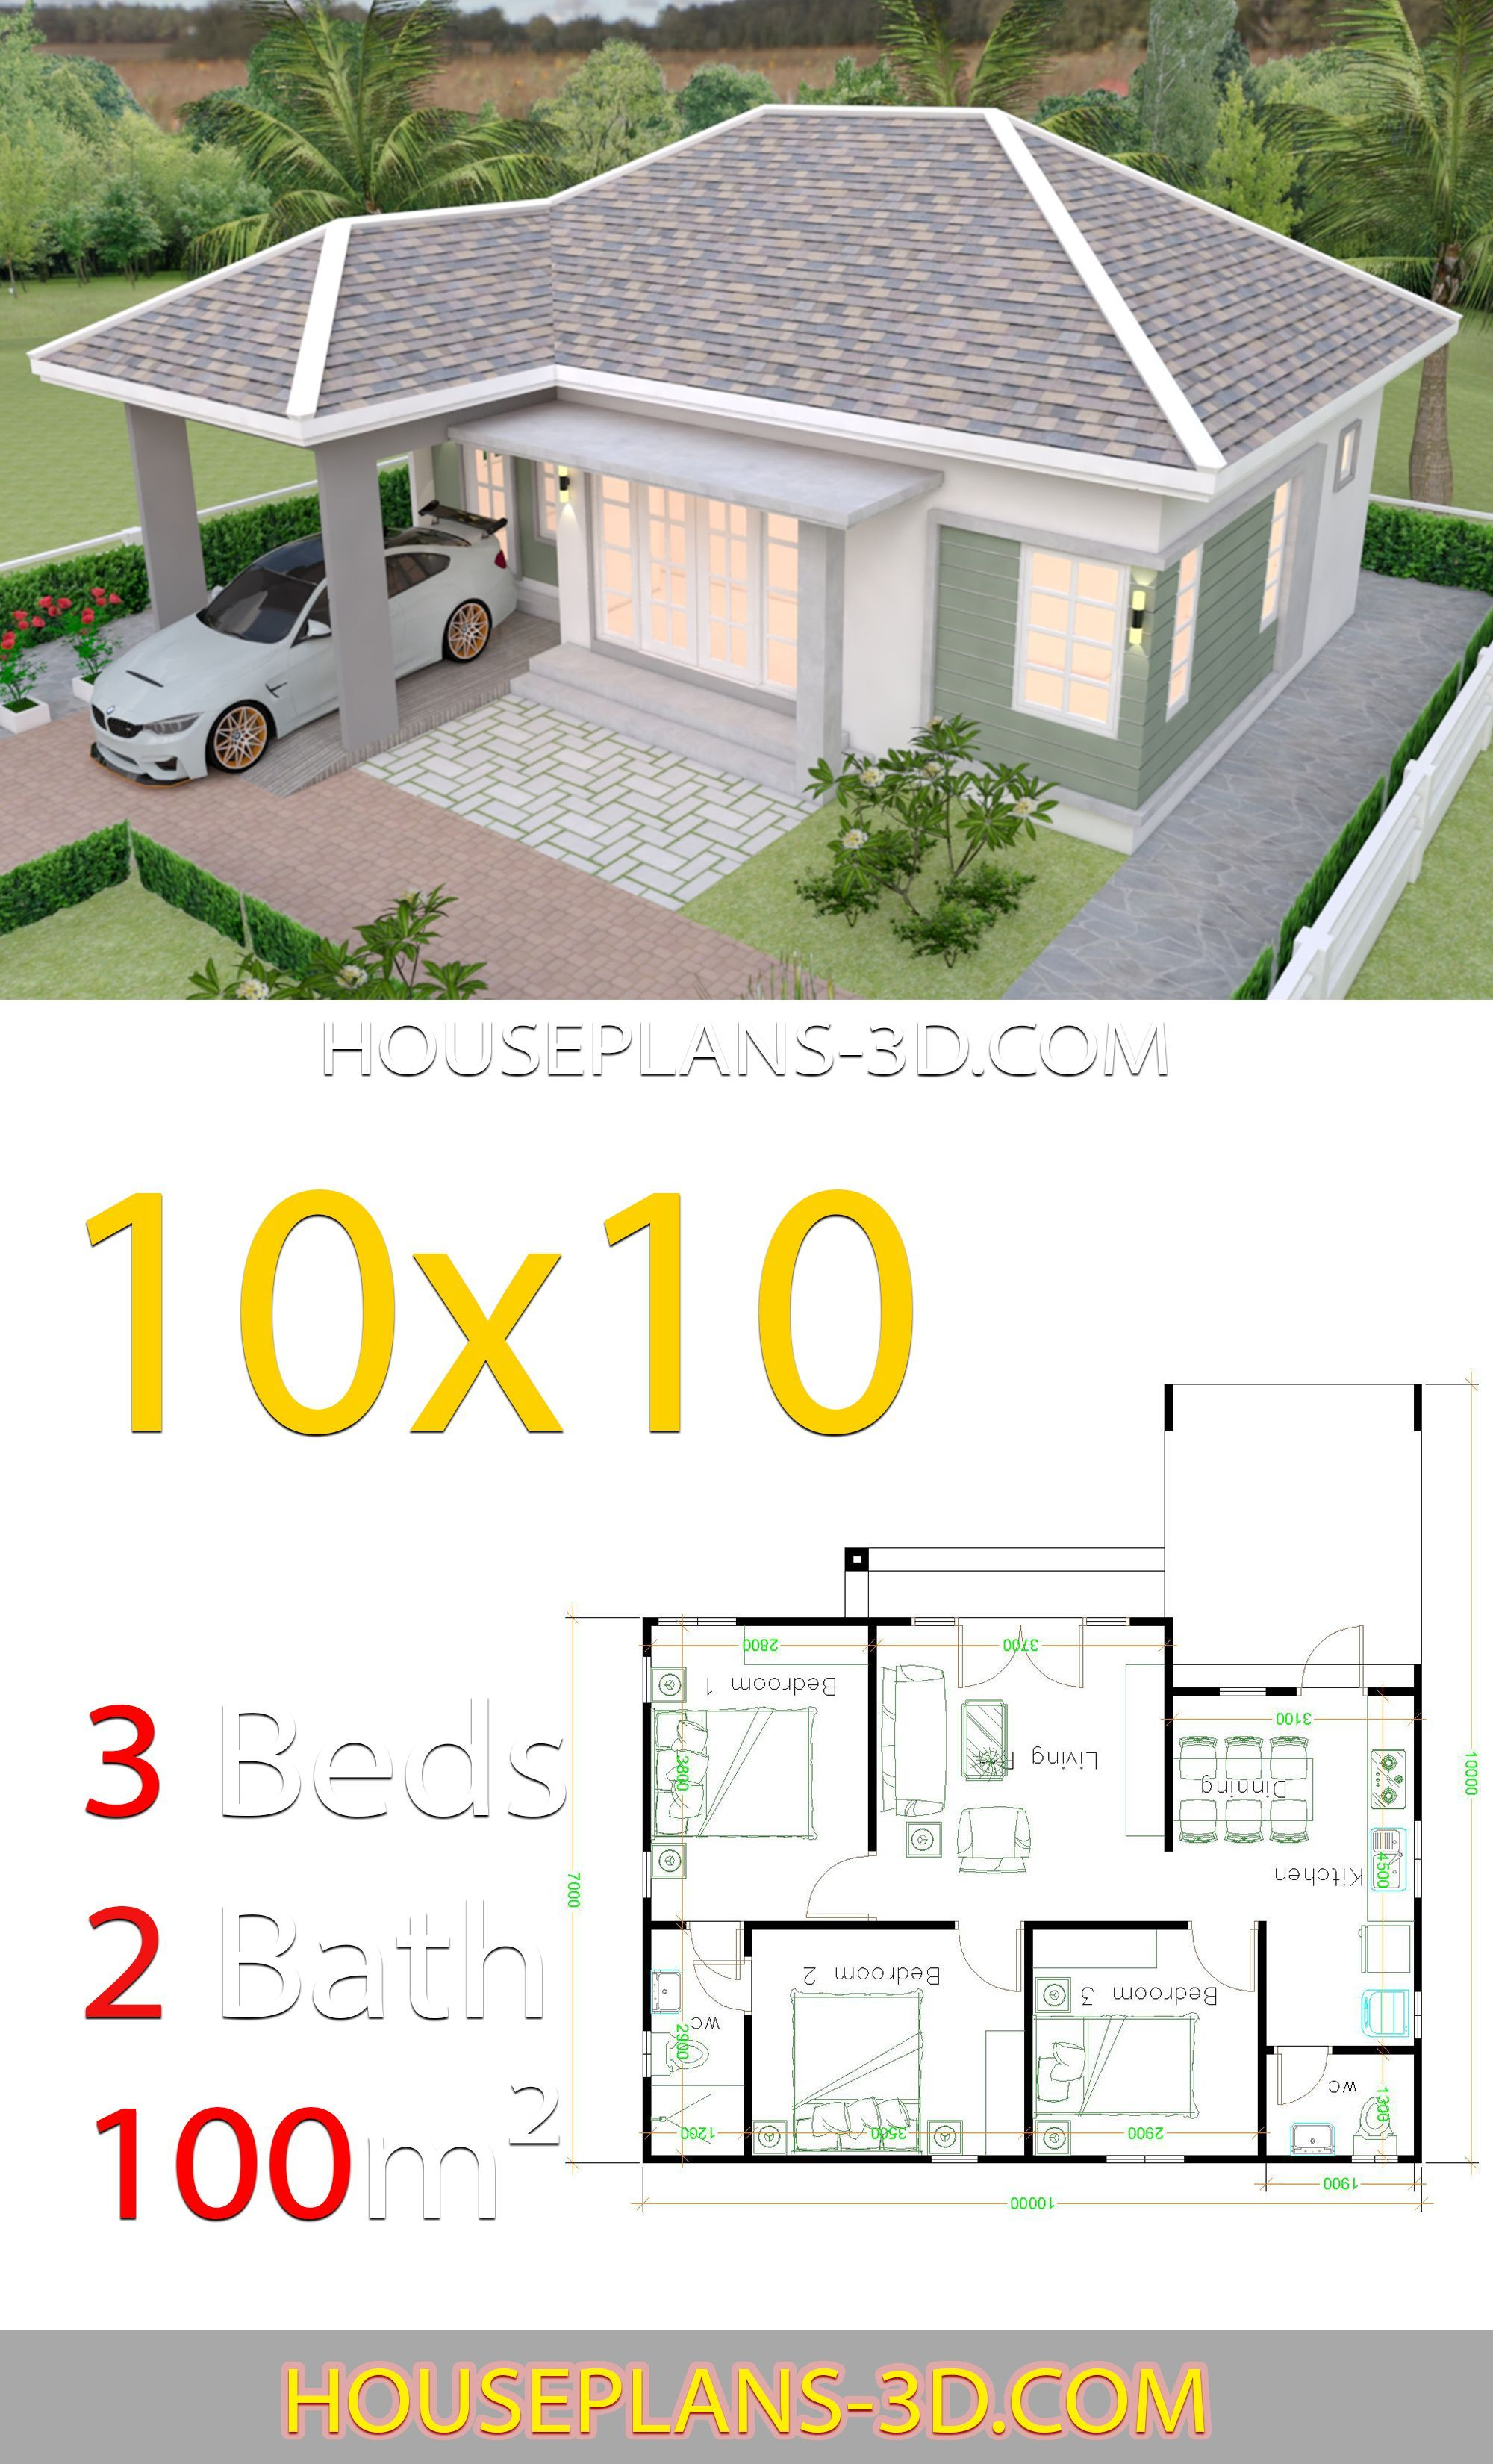 House Design 10x10 With 3 Bedrooms Hip Roof House Plans 3d In 2020 Simple House Design Affordable House Plans House Plan Gallery